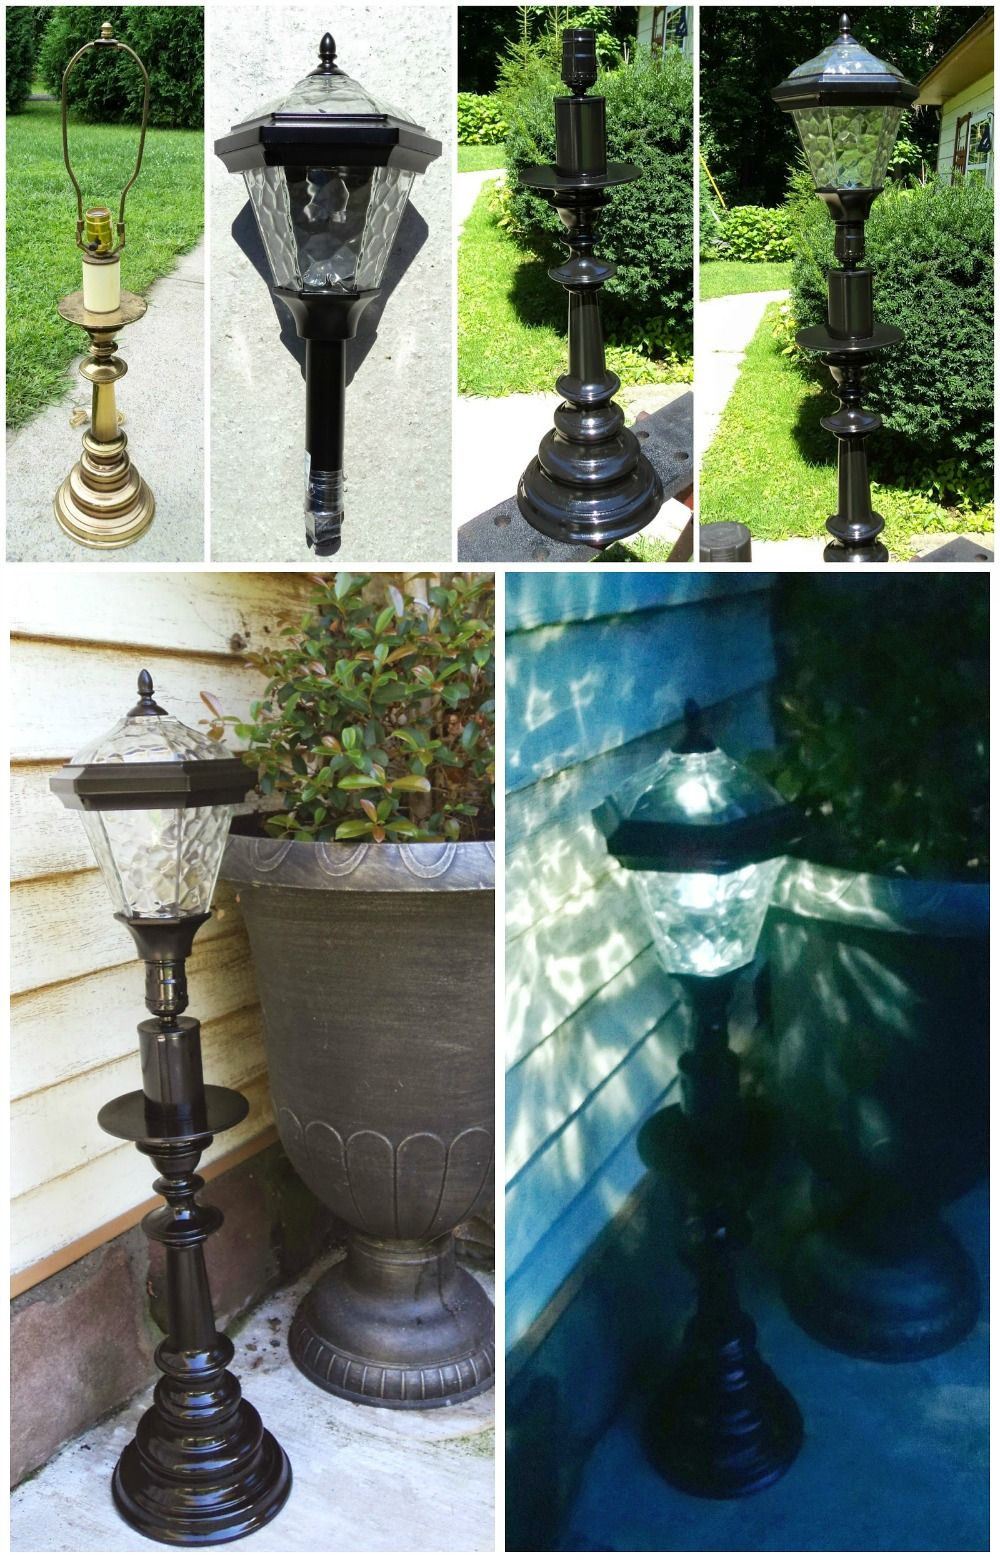 Diy Solar Lamp Just Use An Inexpensive Solar Stake Light And An Old pertaining to Backyard Solar Lighting Ideas